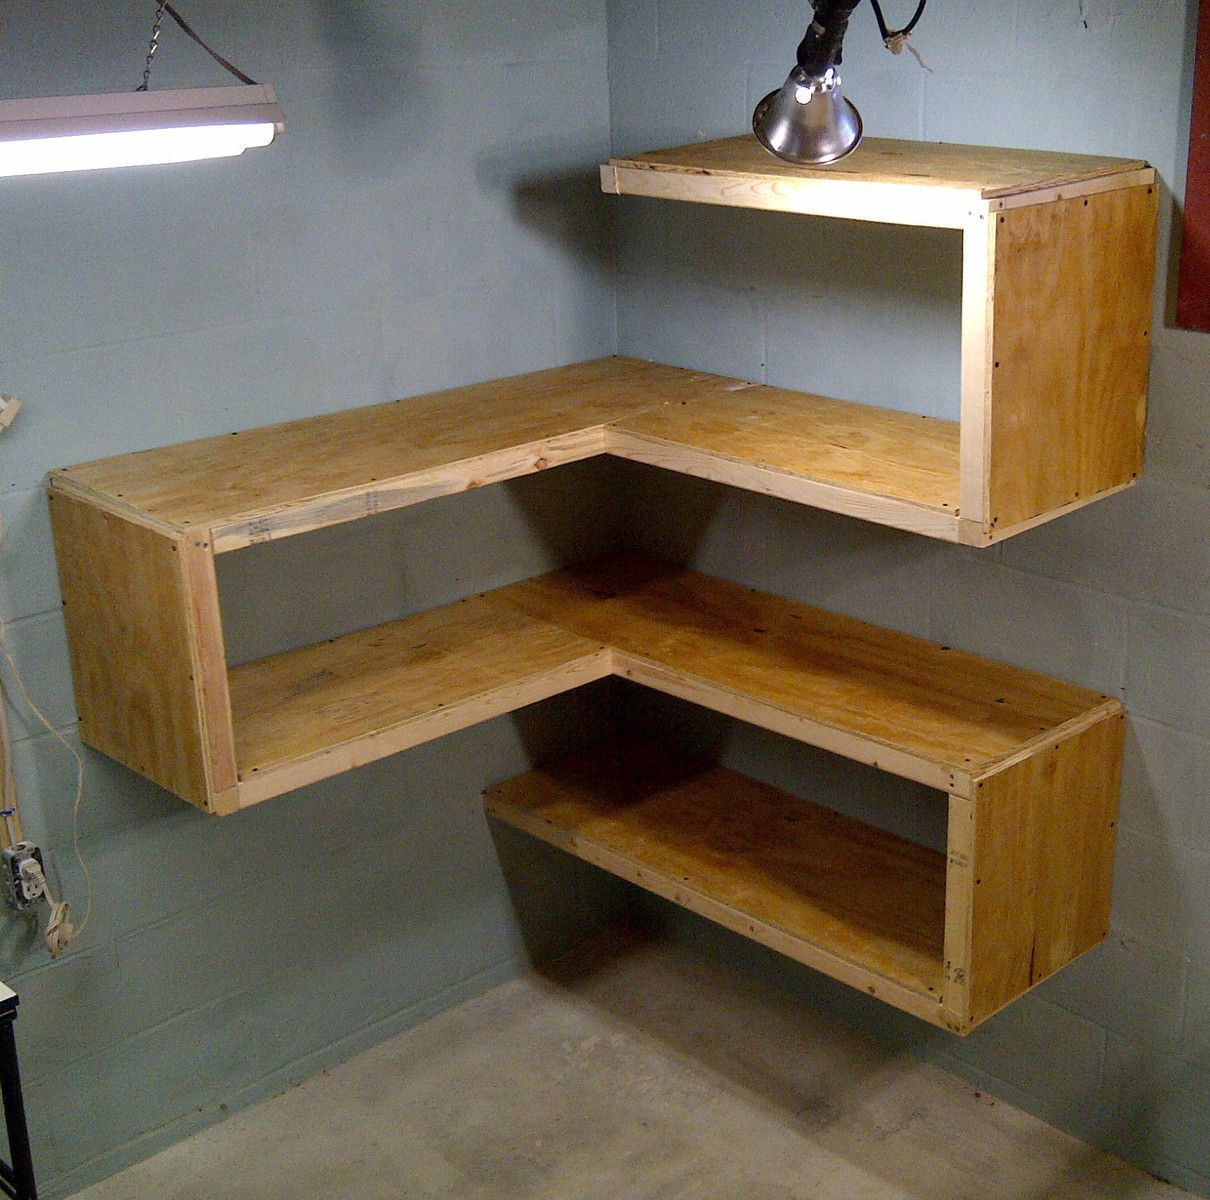 Functional And Funky Corner Shelves And Tables Let's Get